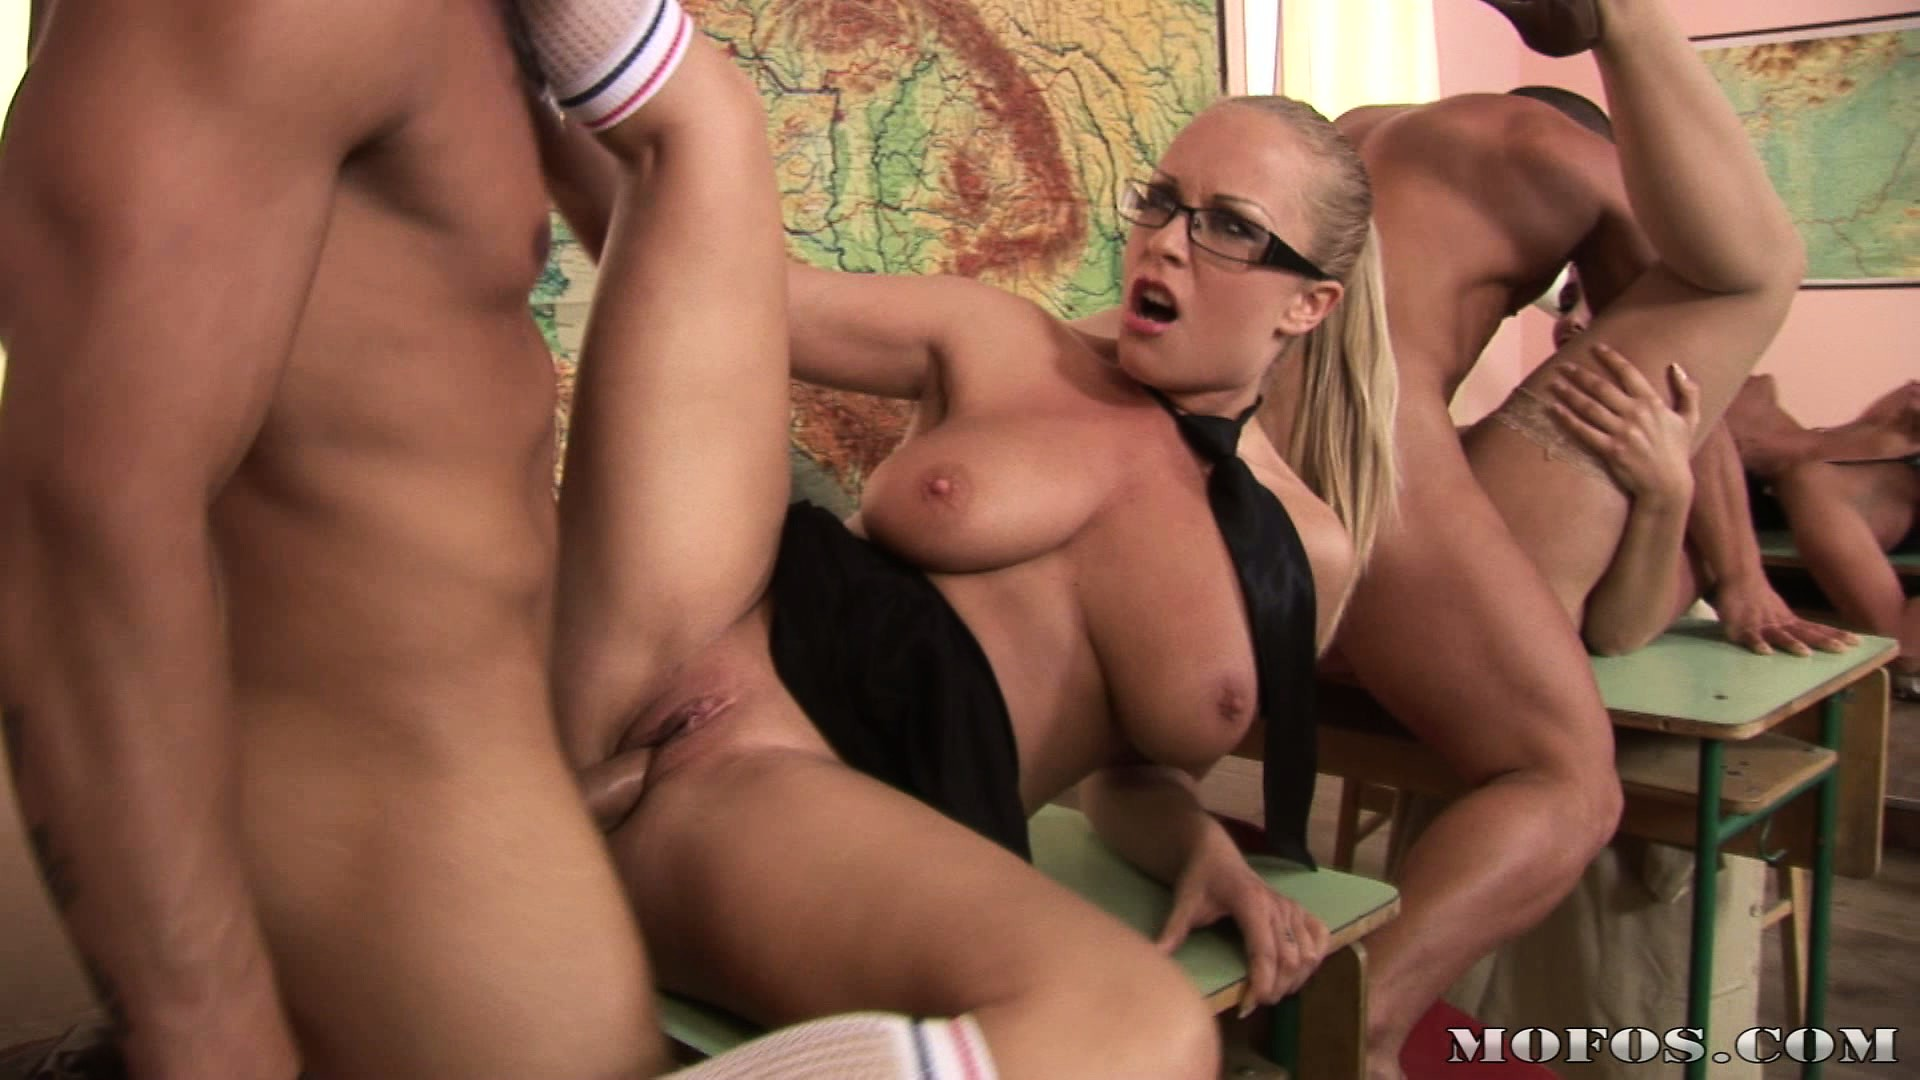 Porno Video of Classroom Orgy With The Euro Teacher Getting Pounded Just As Hard